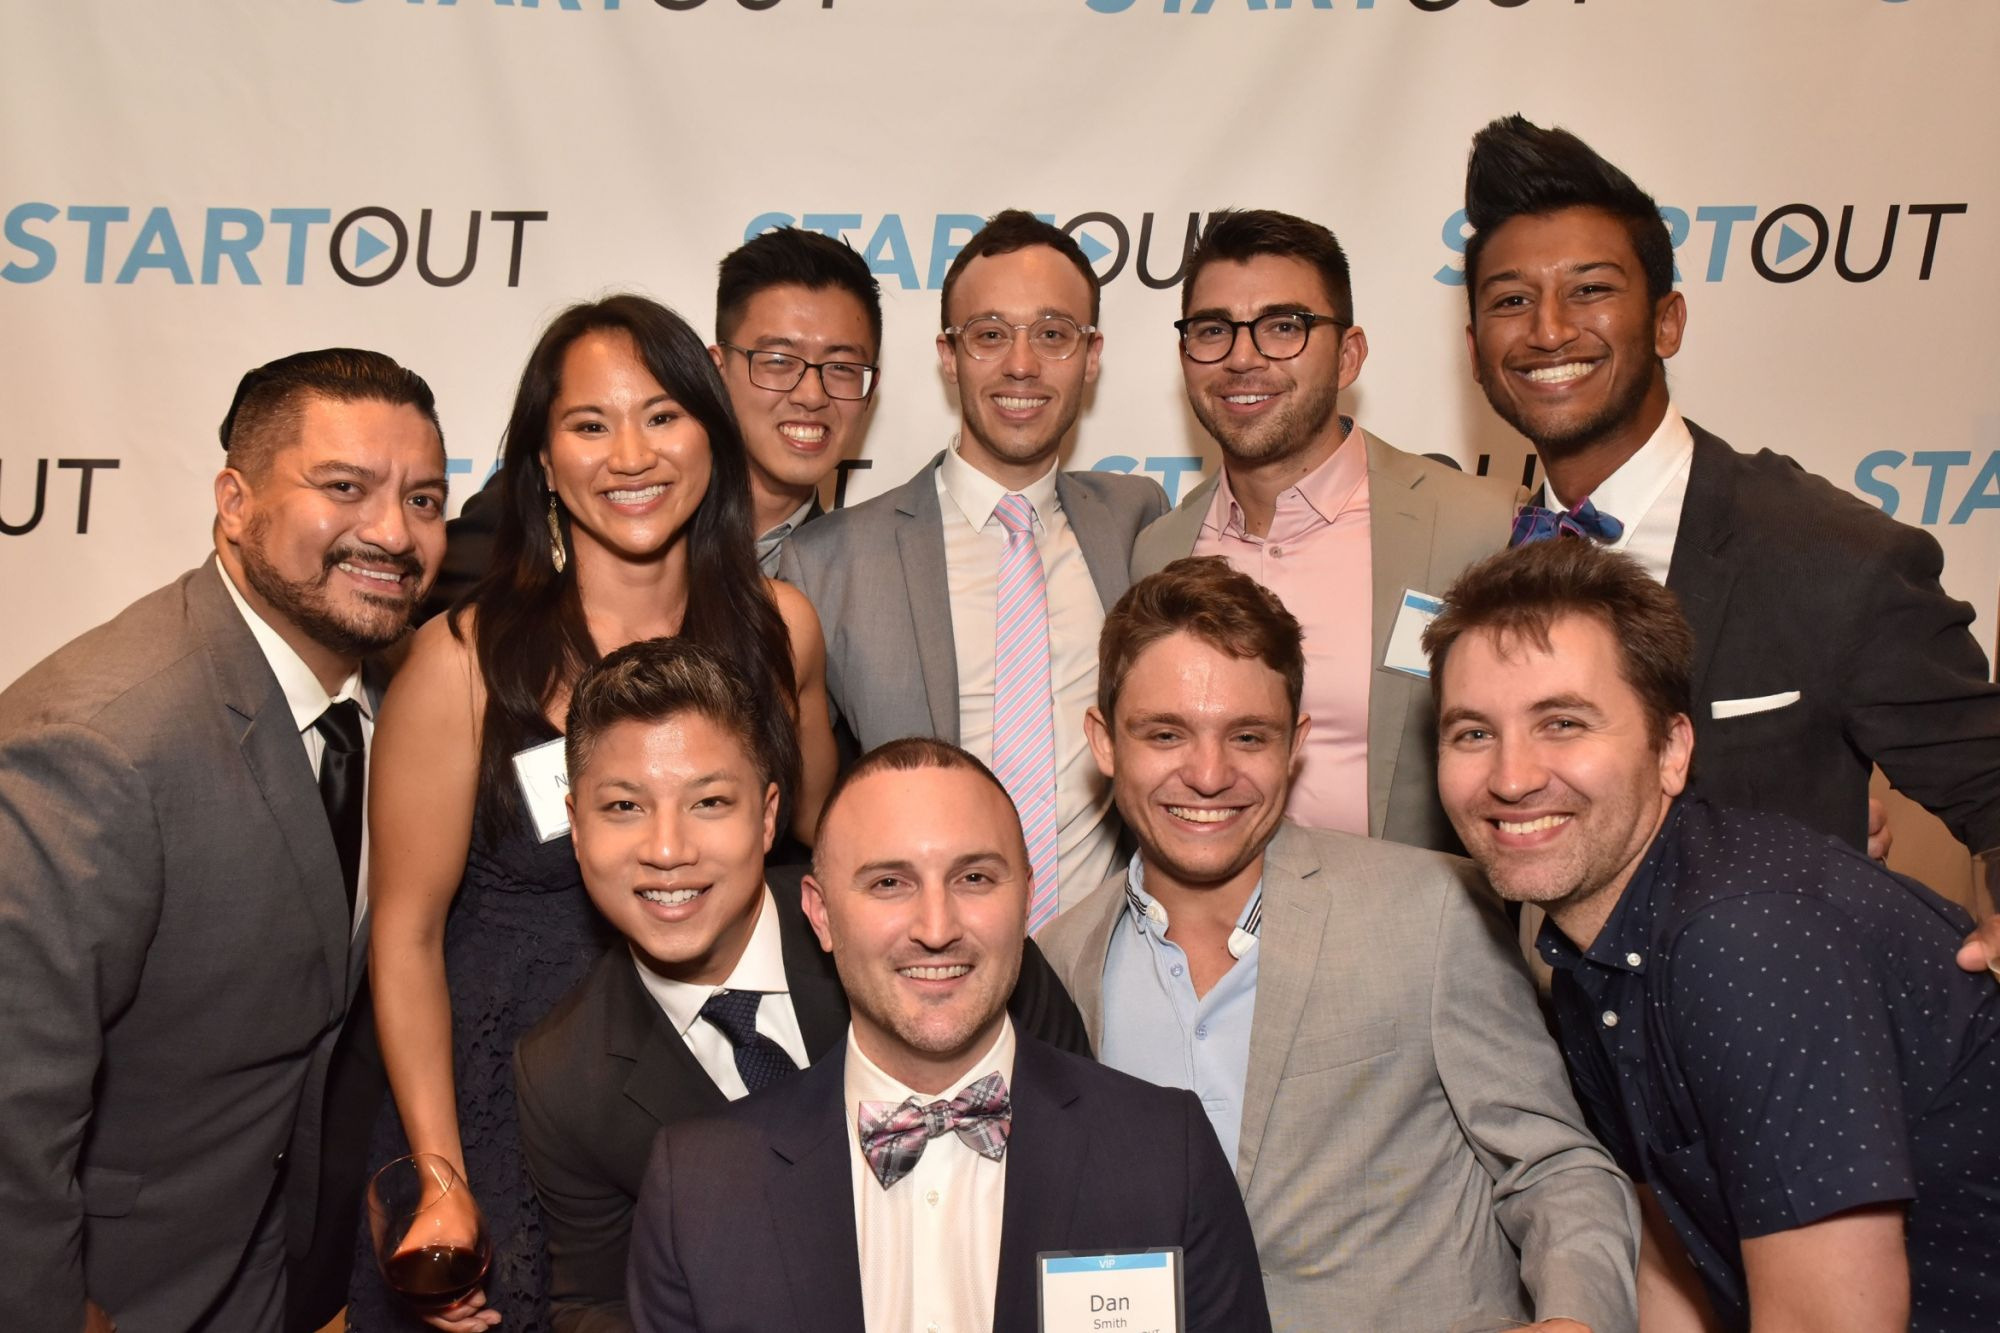 The Story Behind the Nation's First Standalone LGBTQ+ Accelerator, Which Graduates Its 20th Startup Today